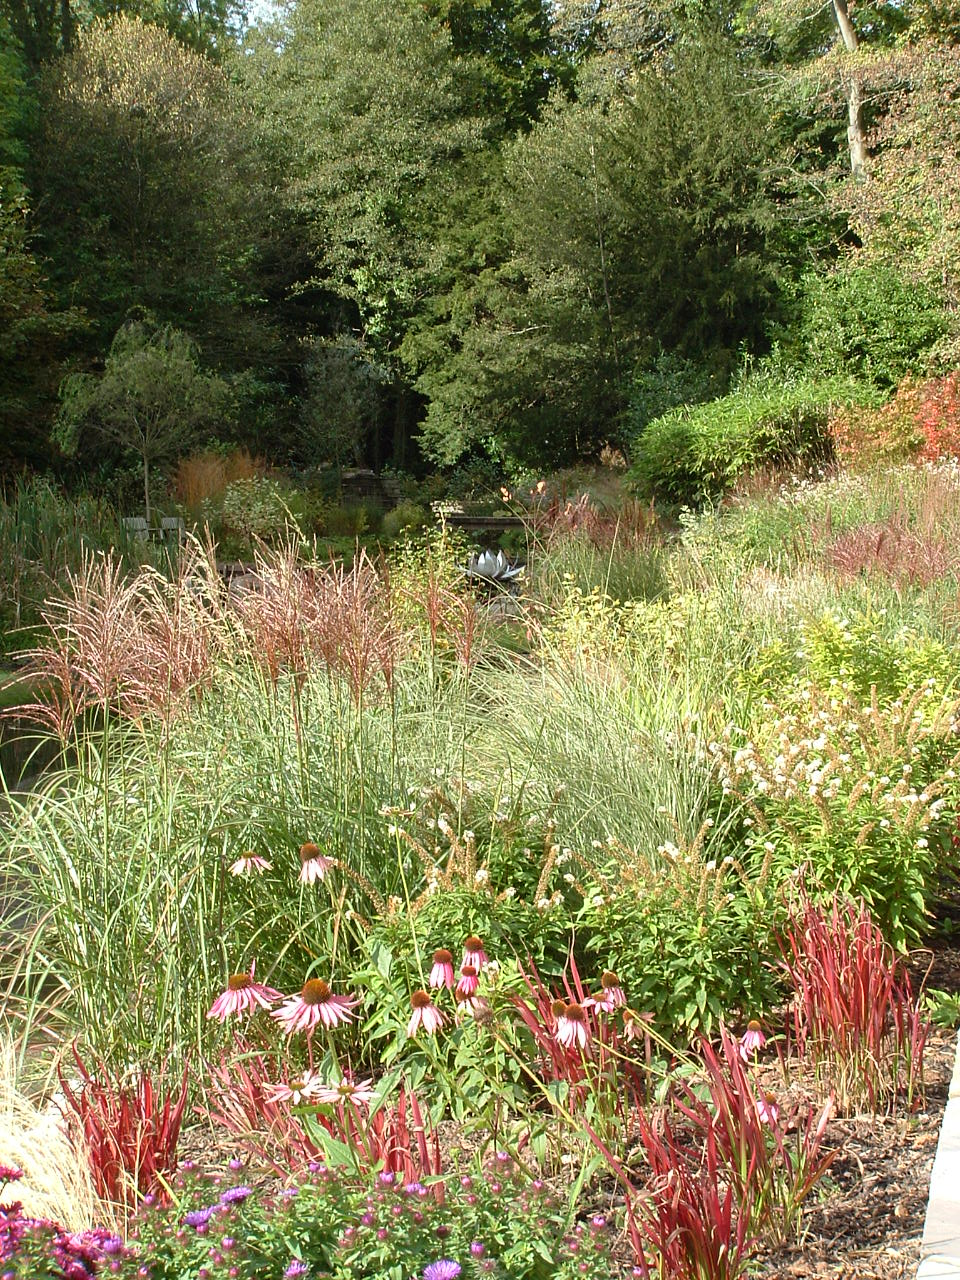 Large swathes of ornamental grasses, Miscanthus and Panicum species, colour brilliantly in autumn and blend in tones of red and pink with Echinacea purpurea